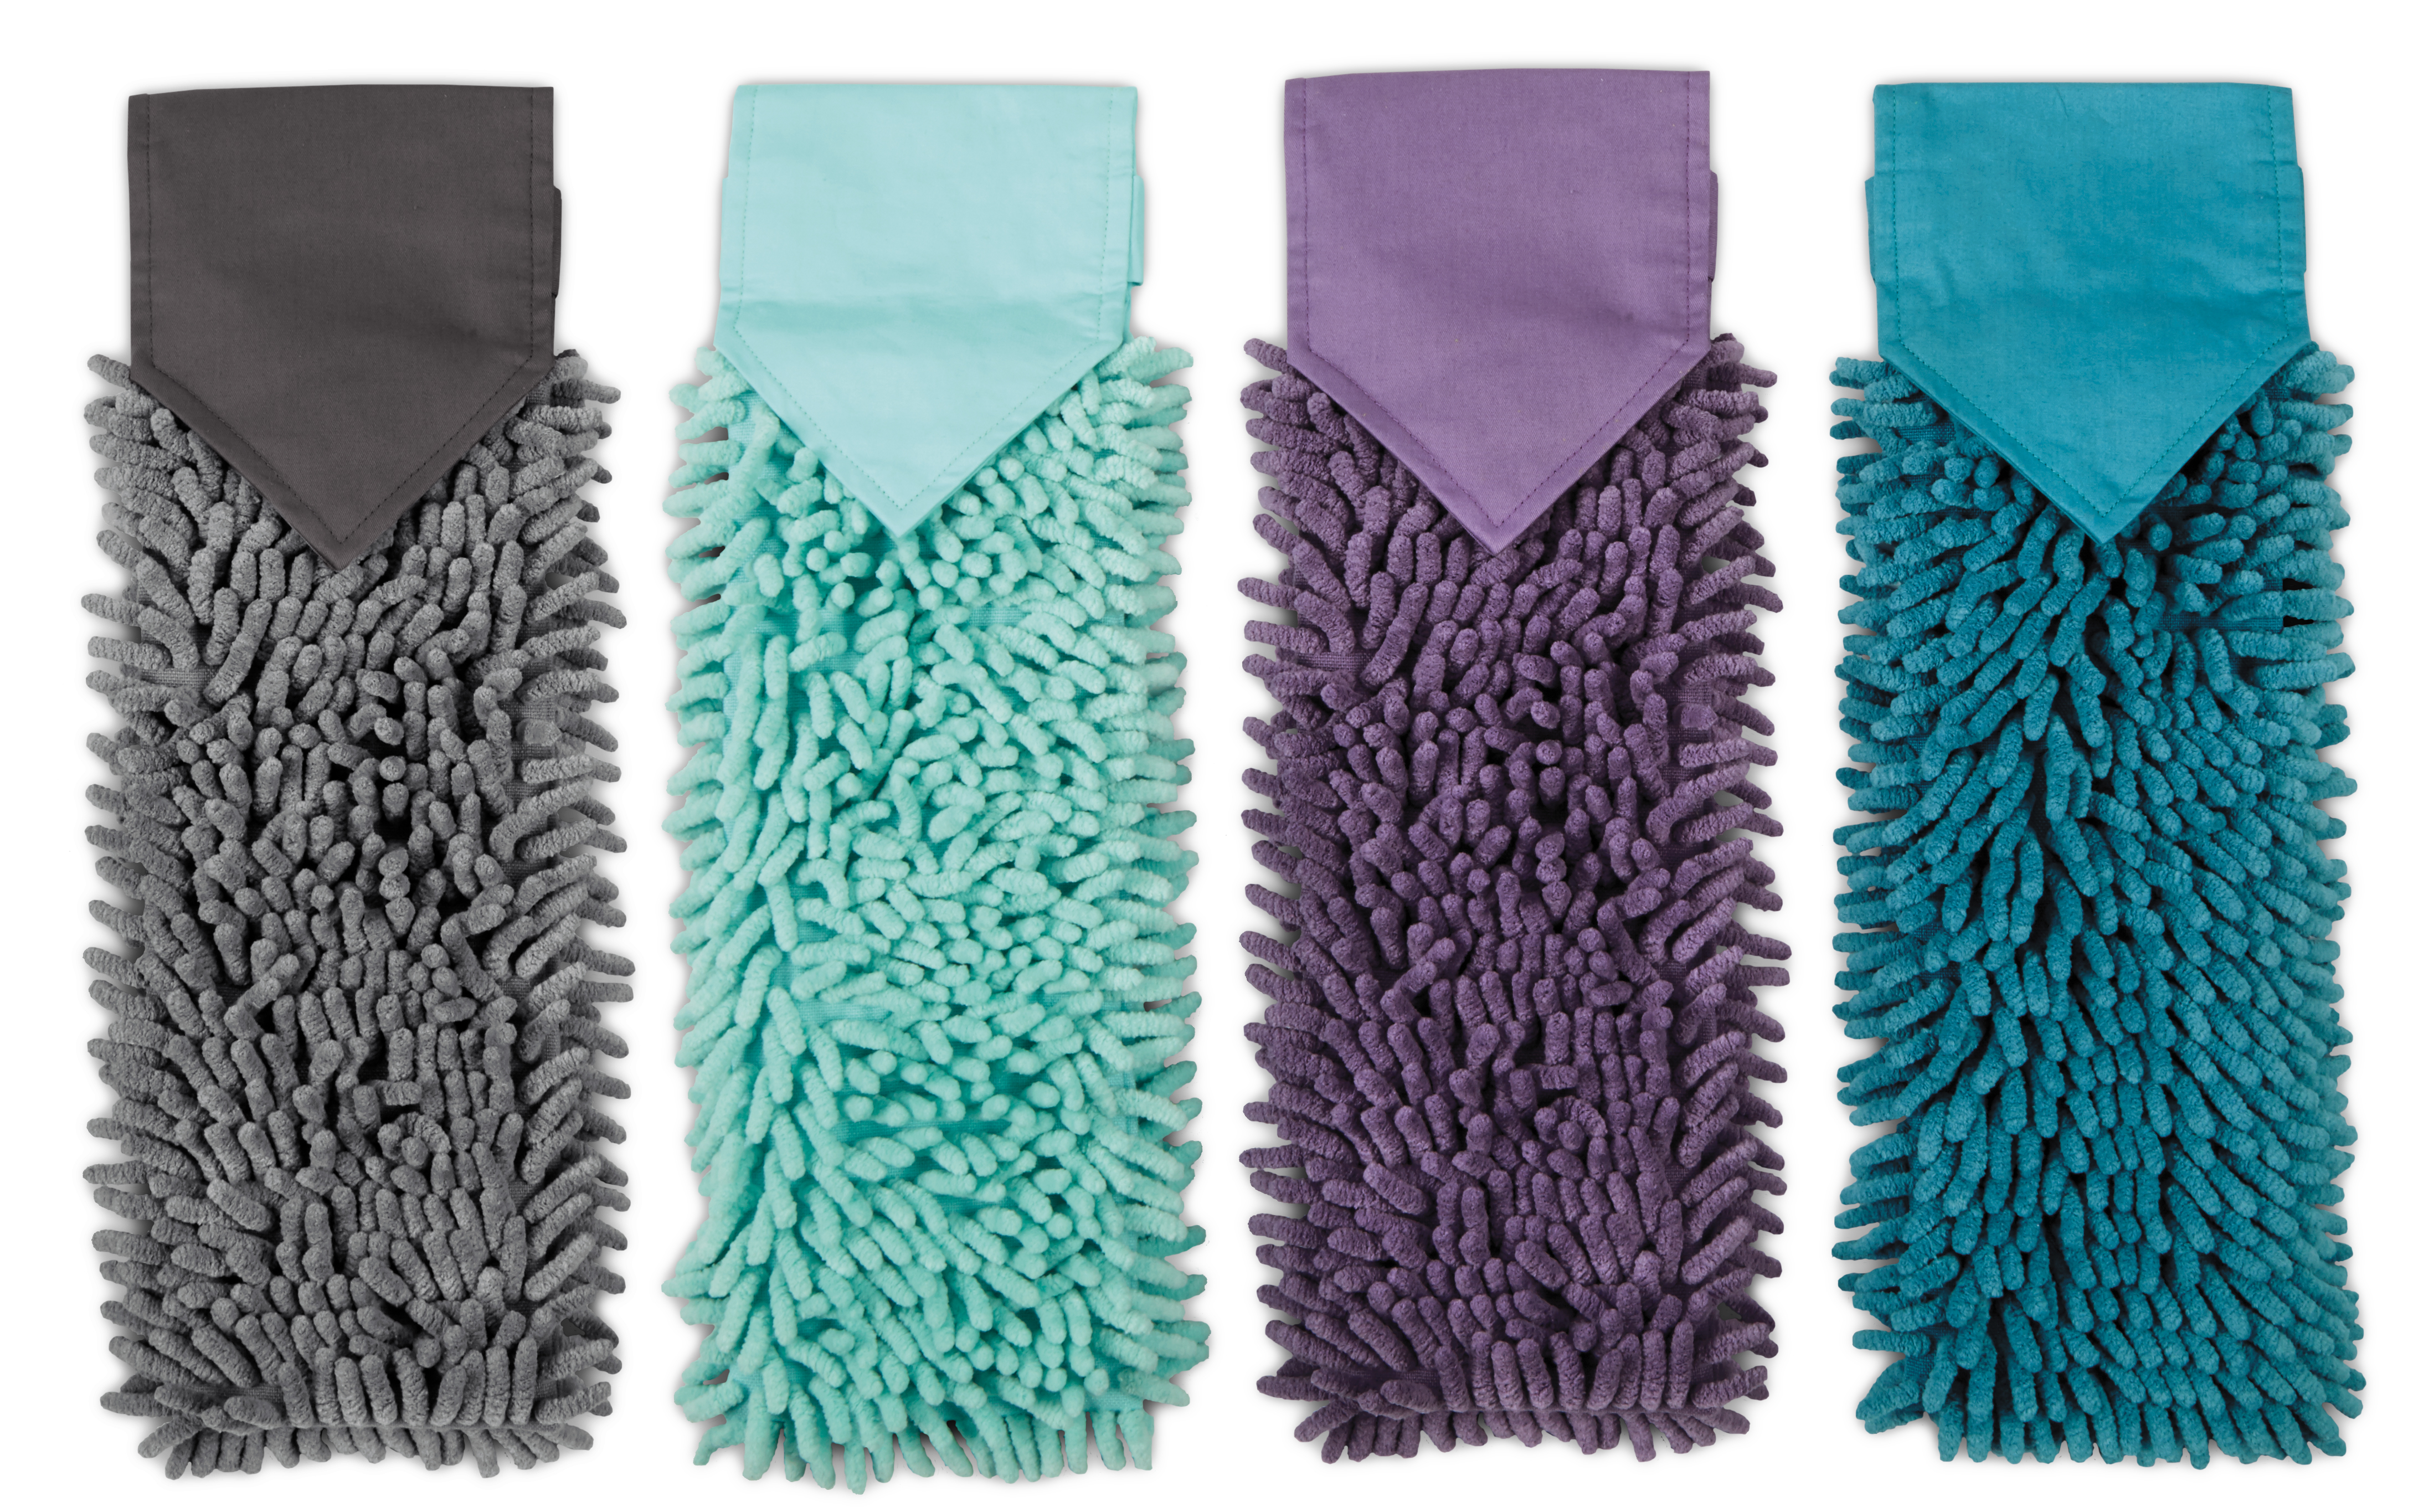 Norwex Chenille Hand Towels- Cleaner, Healthier Hand